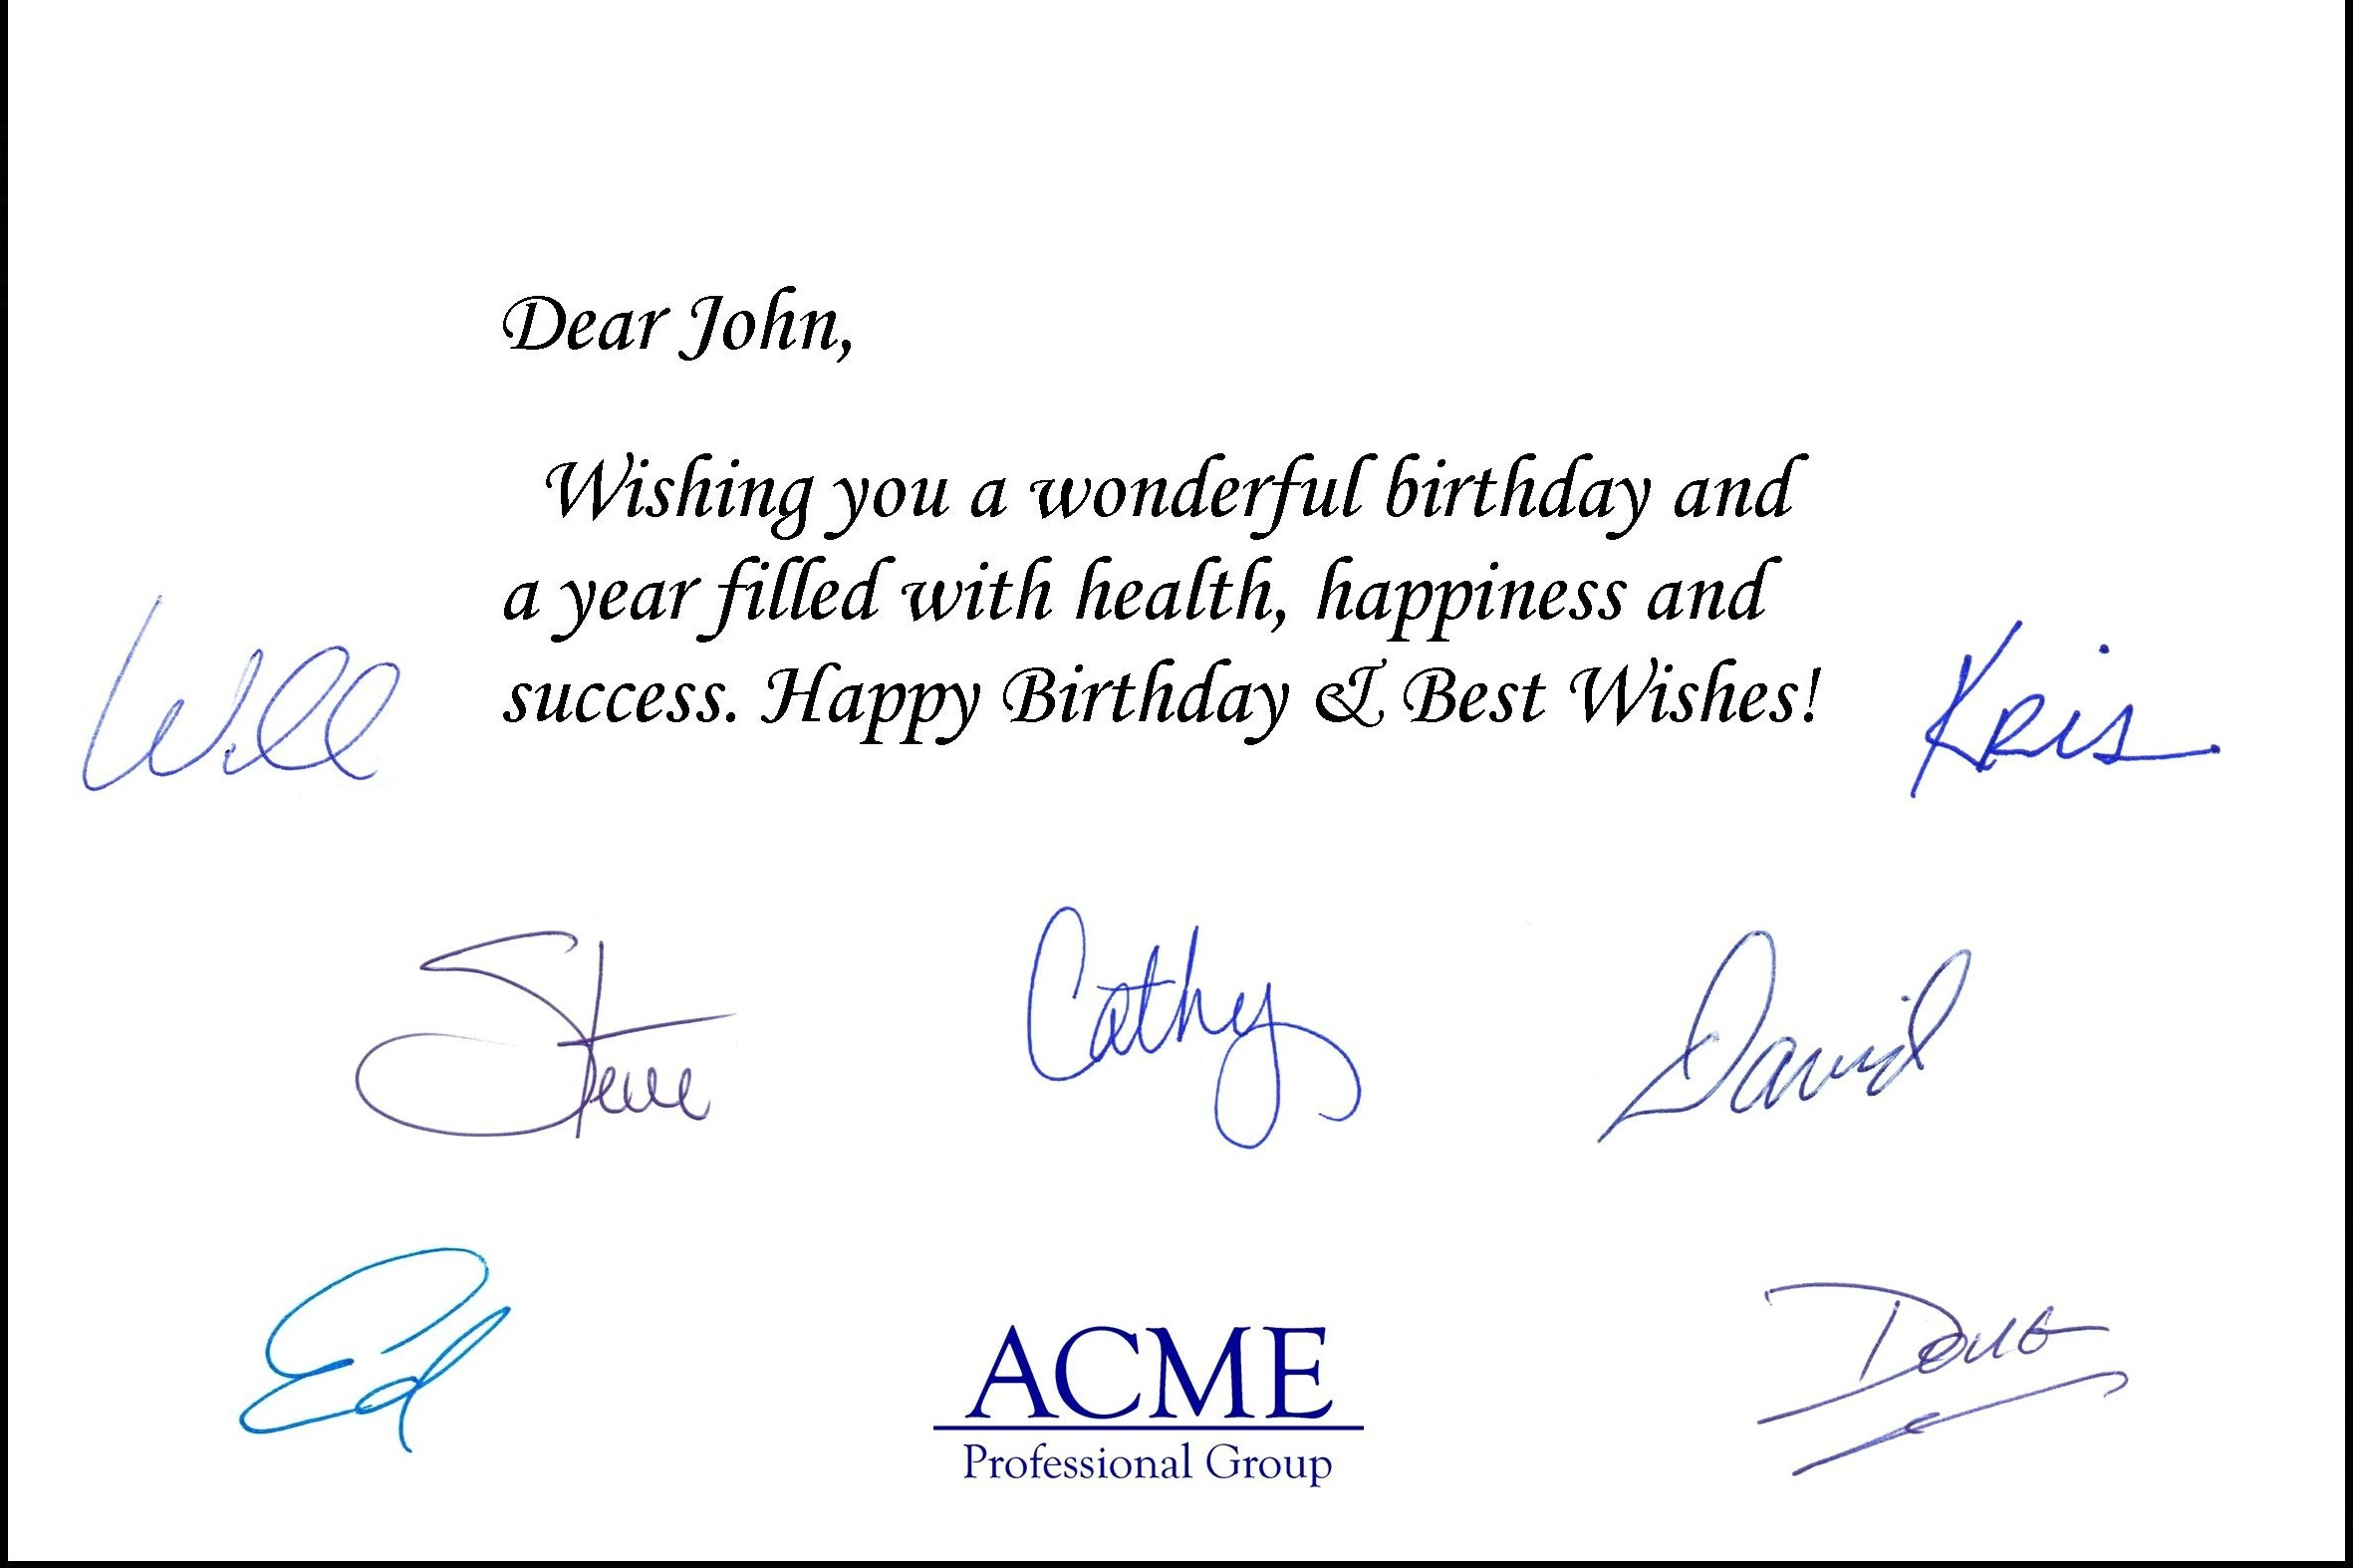 Automated Birthday Card Services For Professionals